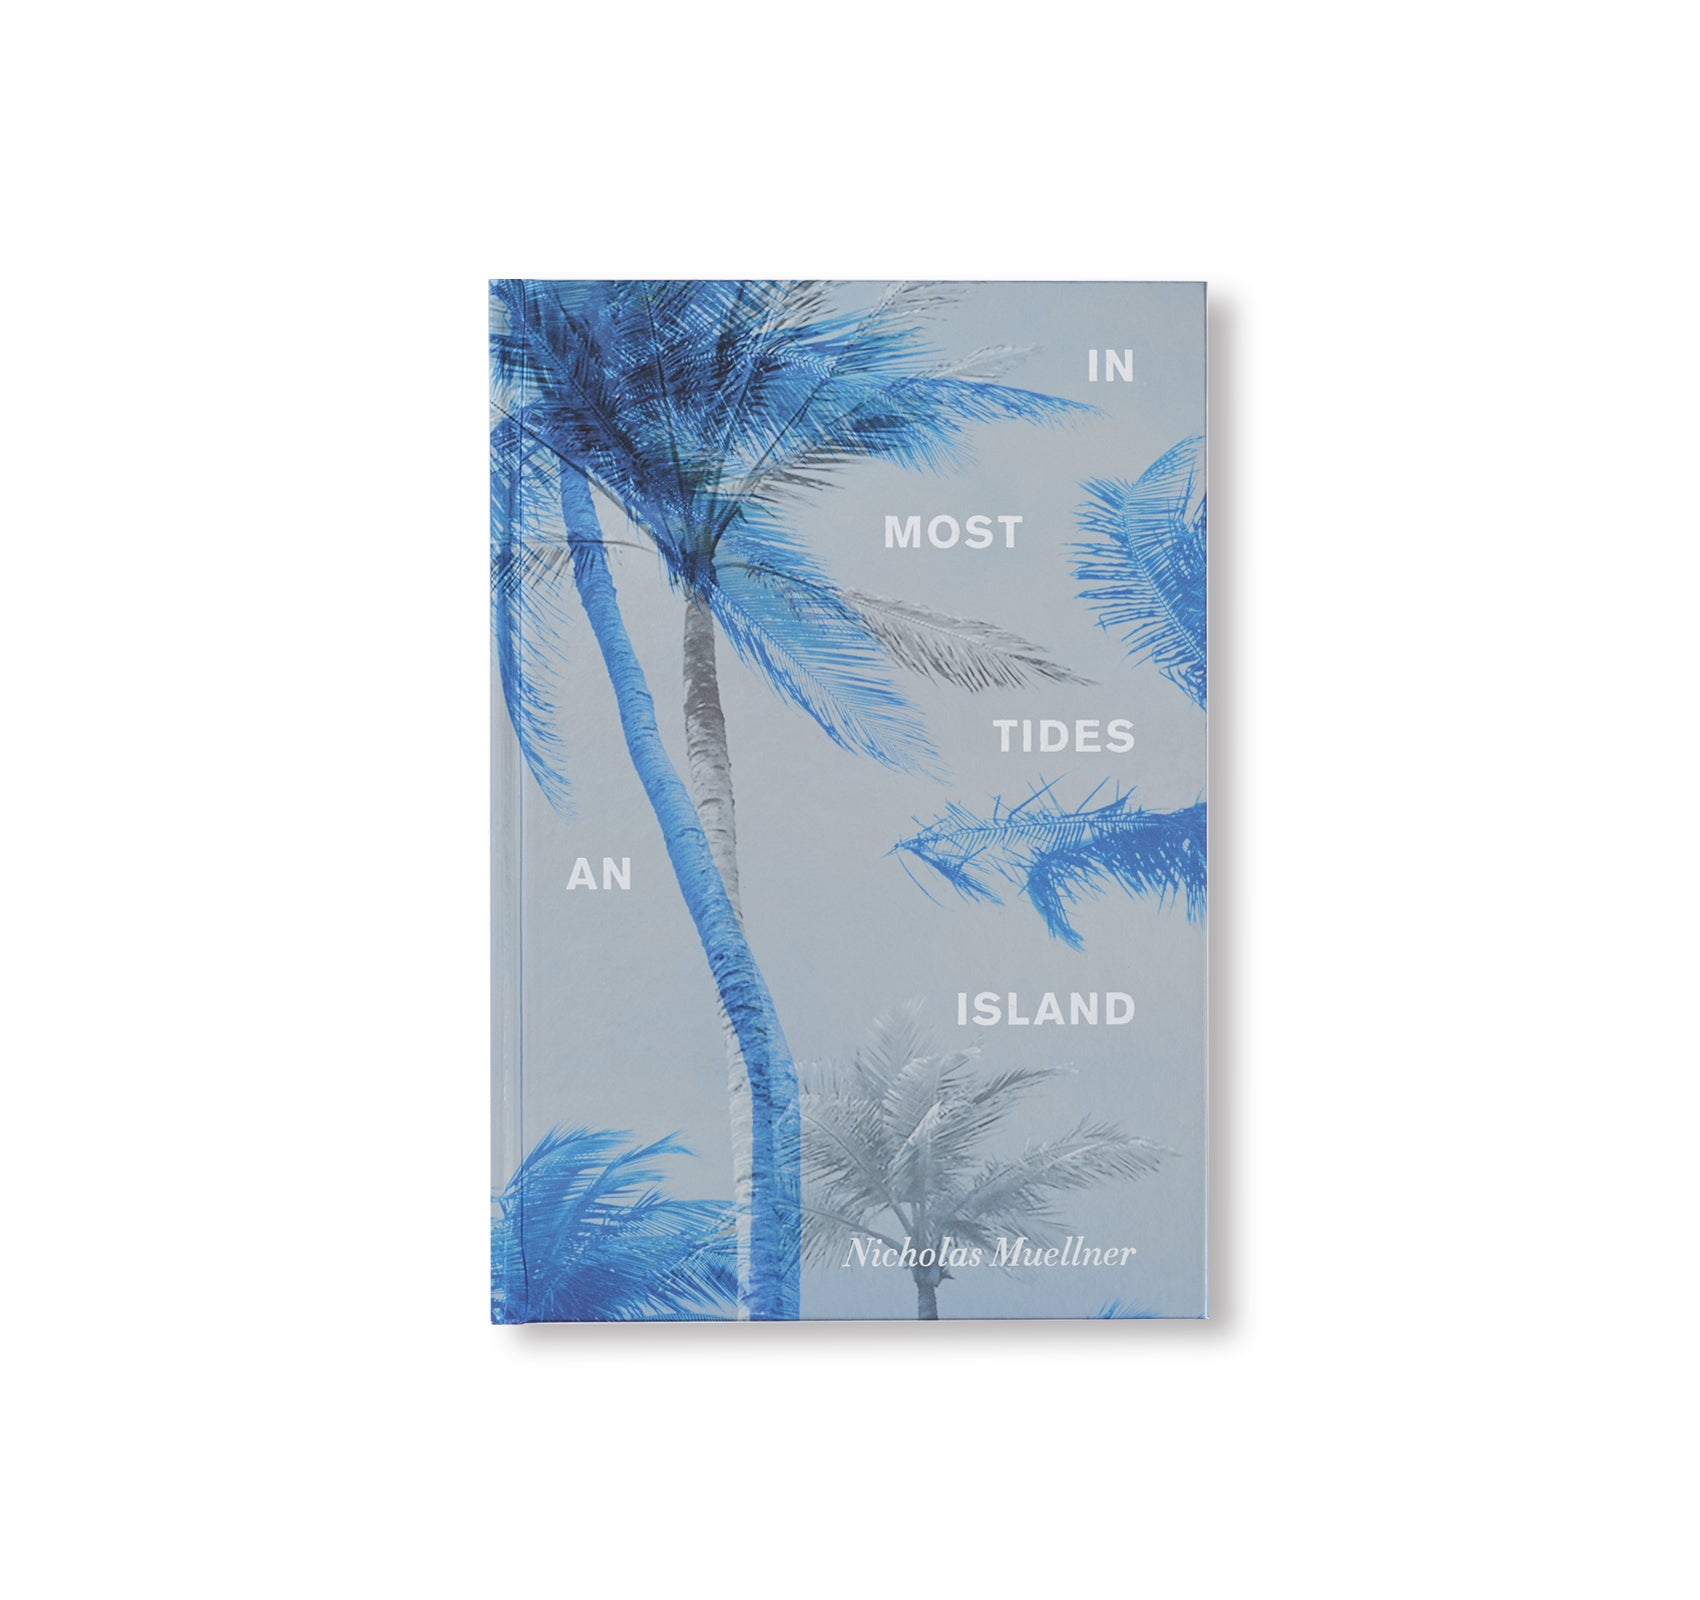 IN MOST TIDES AN ISLAND by Nicholas Muellner